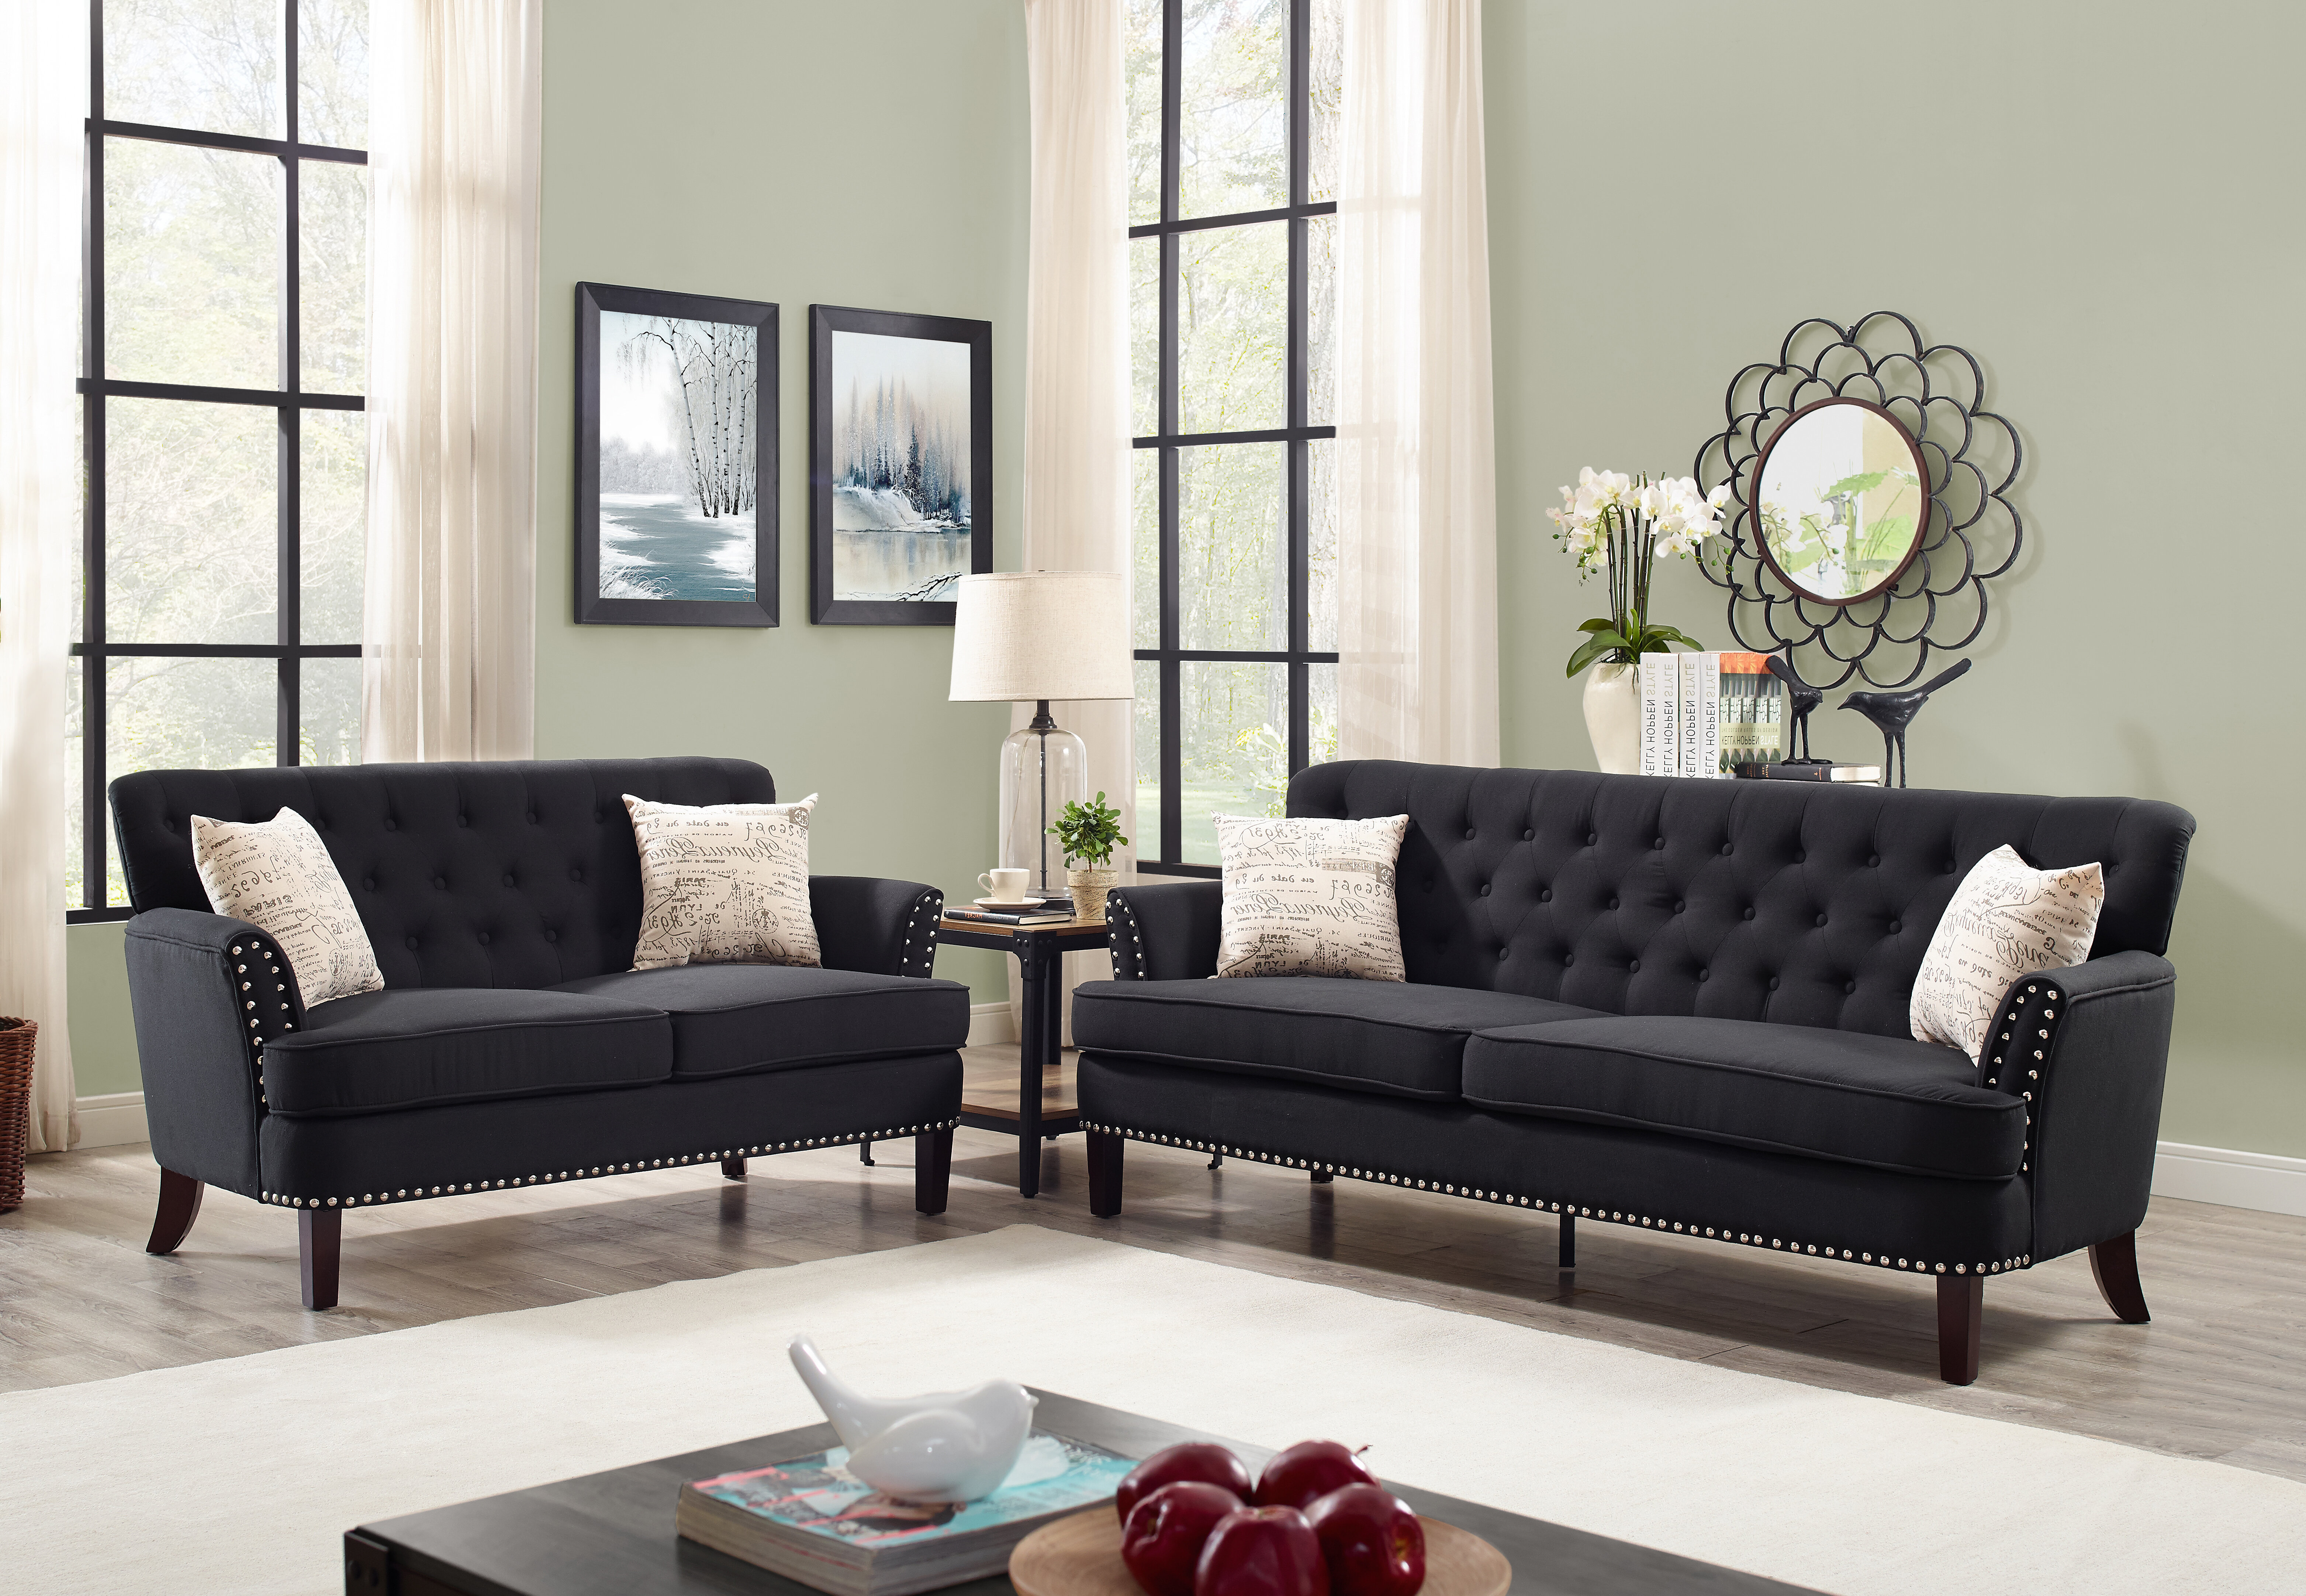 Canora grey quayle wing chesterfield nailhead 2 piece living room set wayfair ca